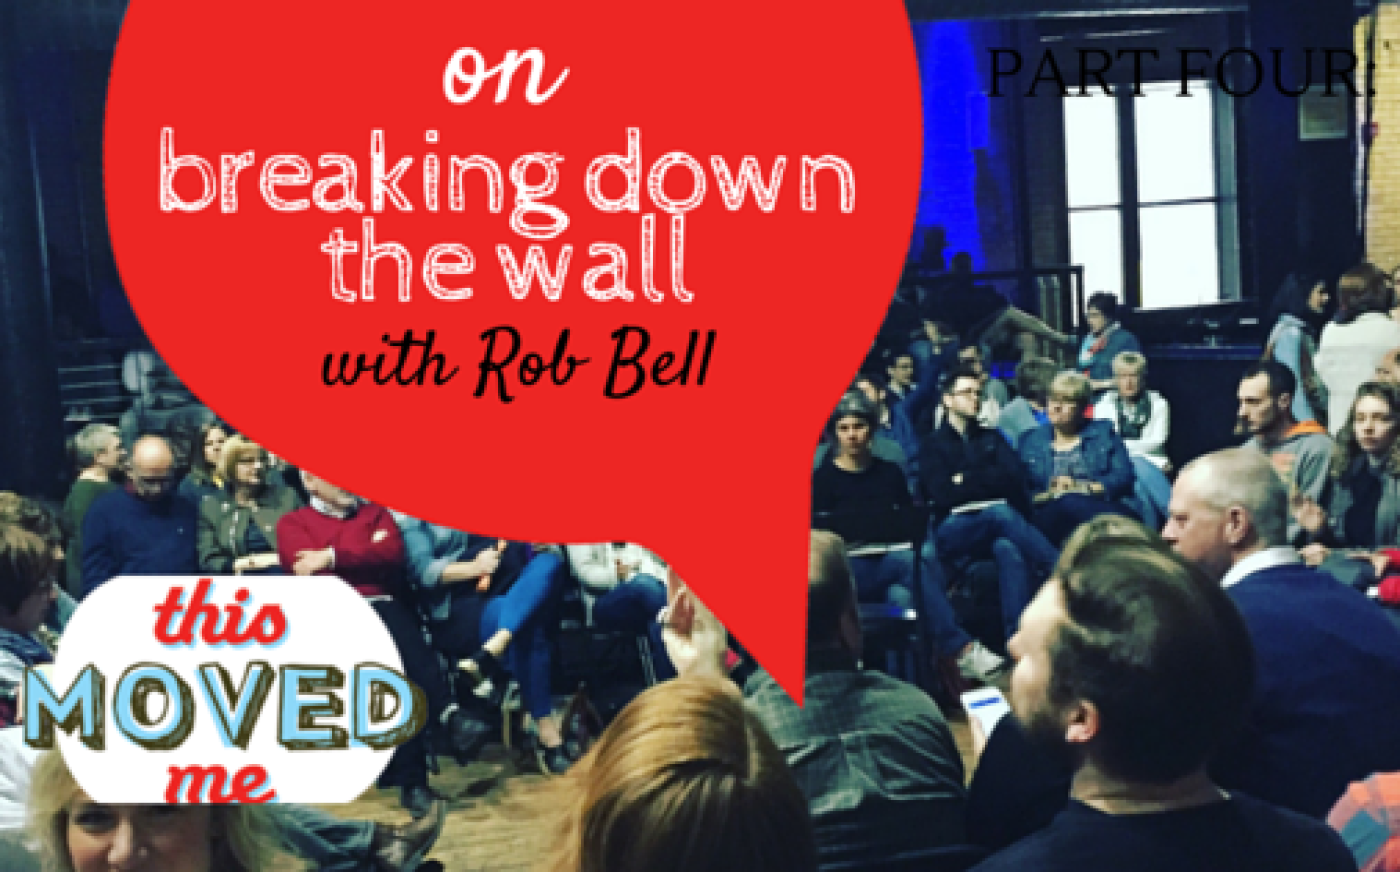 TMM-Rob-Bell-Breaking-Down-the-Wall-1400x872.png